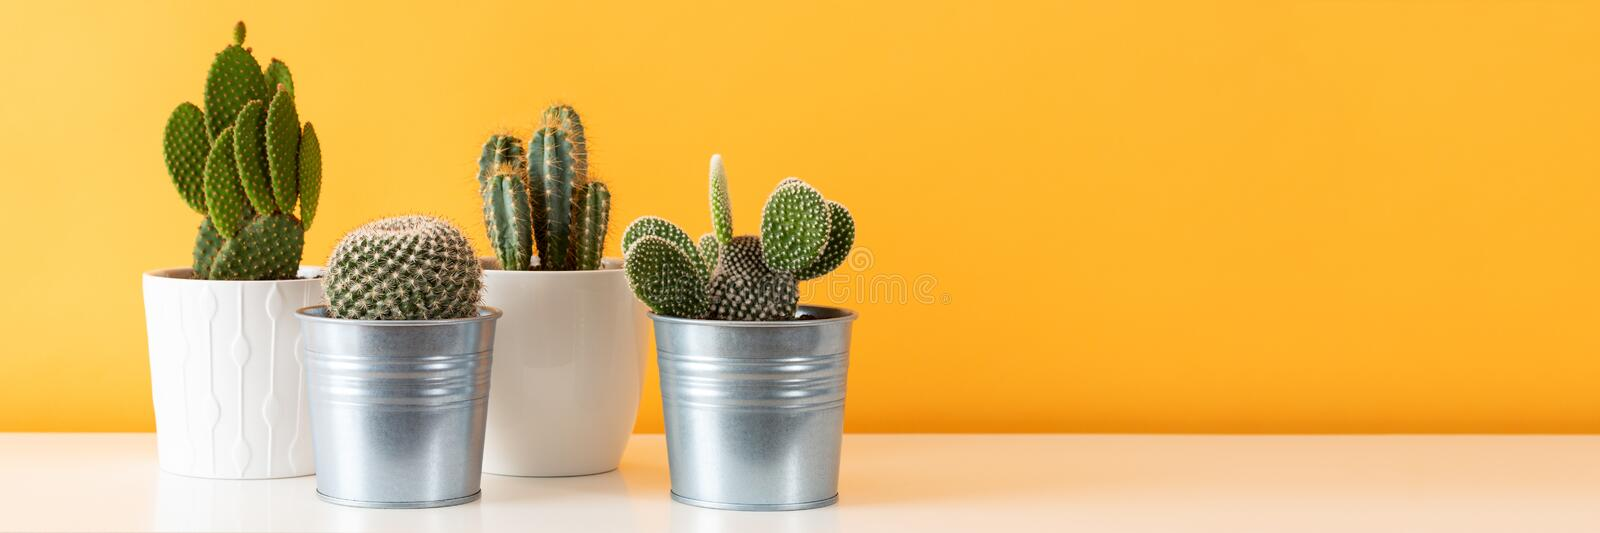 Potted cactus house plants on white shelf against pastel mustard colored wall. Cactus plants banner. Collection of various cactus plants in different pots royalty free stock photos